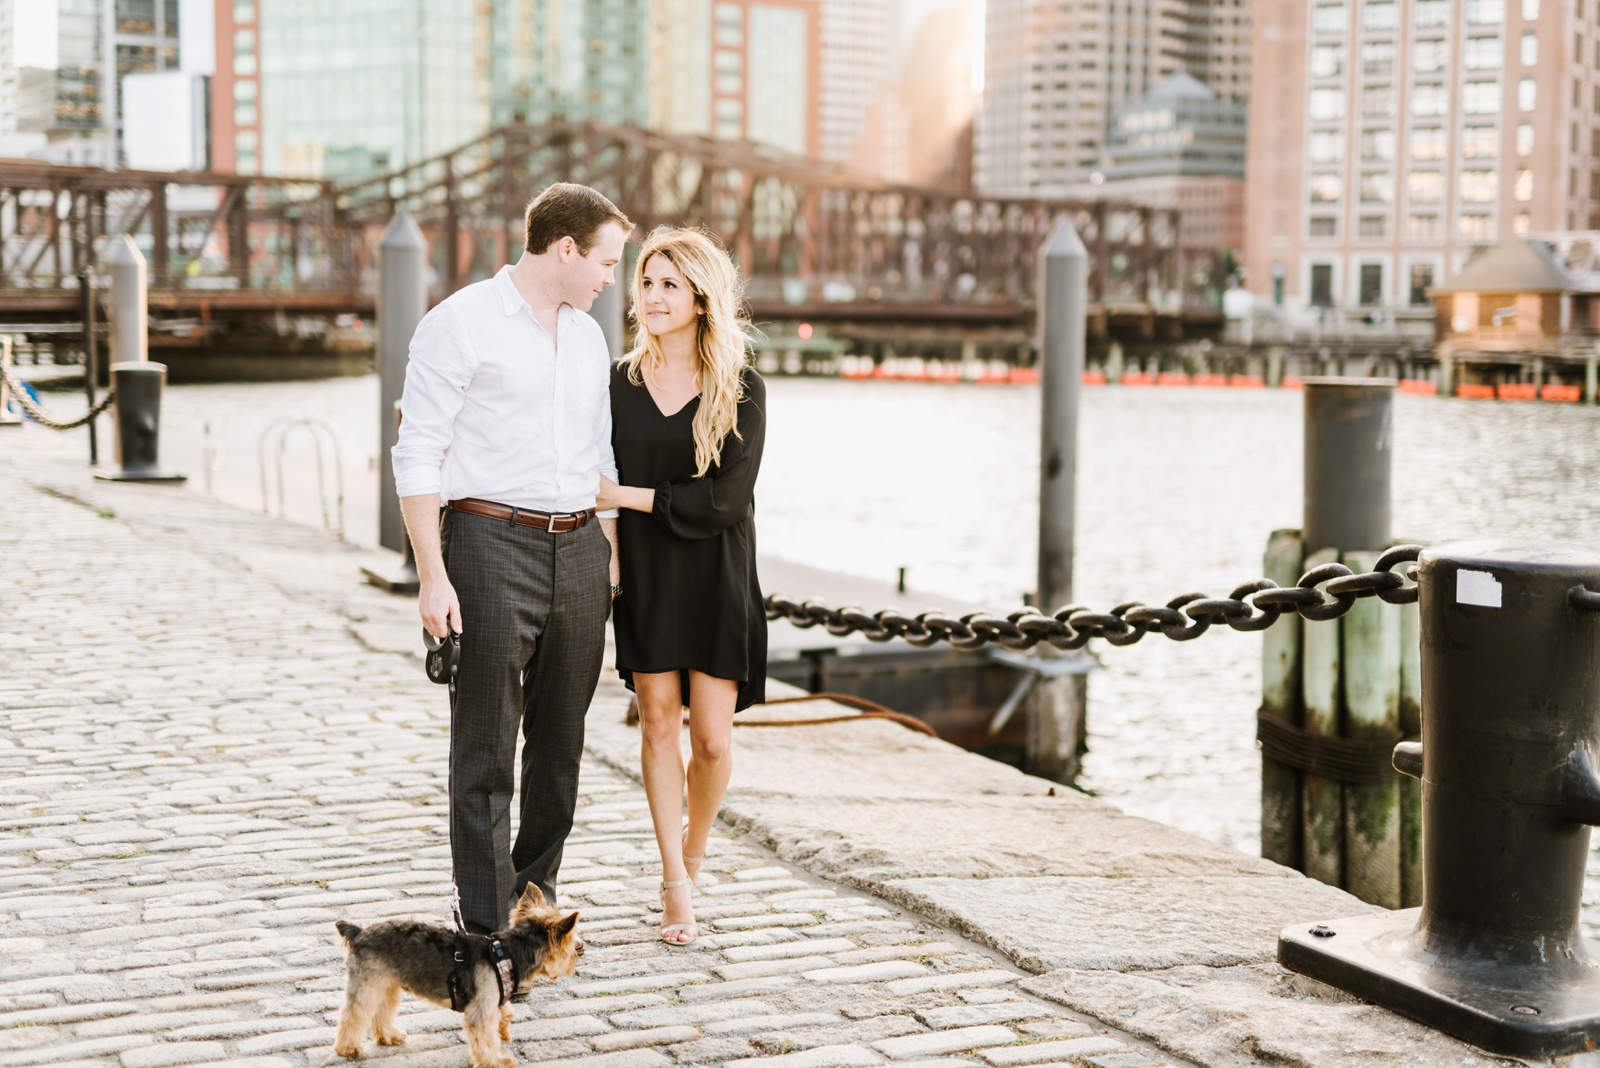 Millennial dating; image via  Annmarie Swift Photography